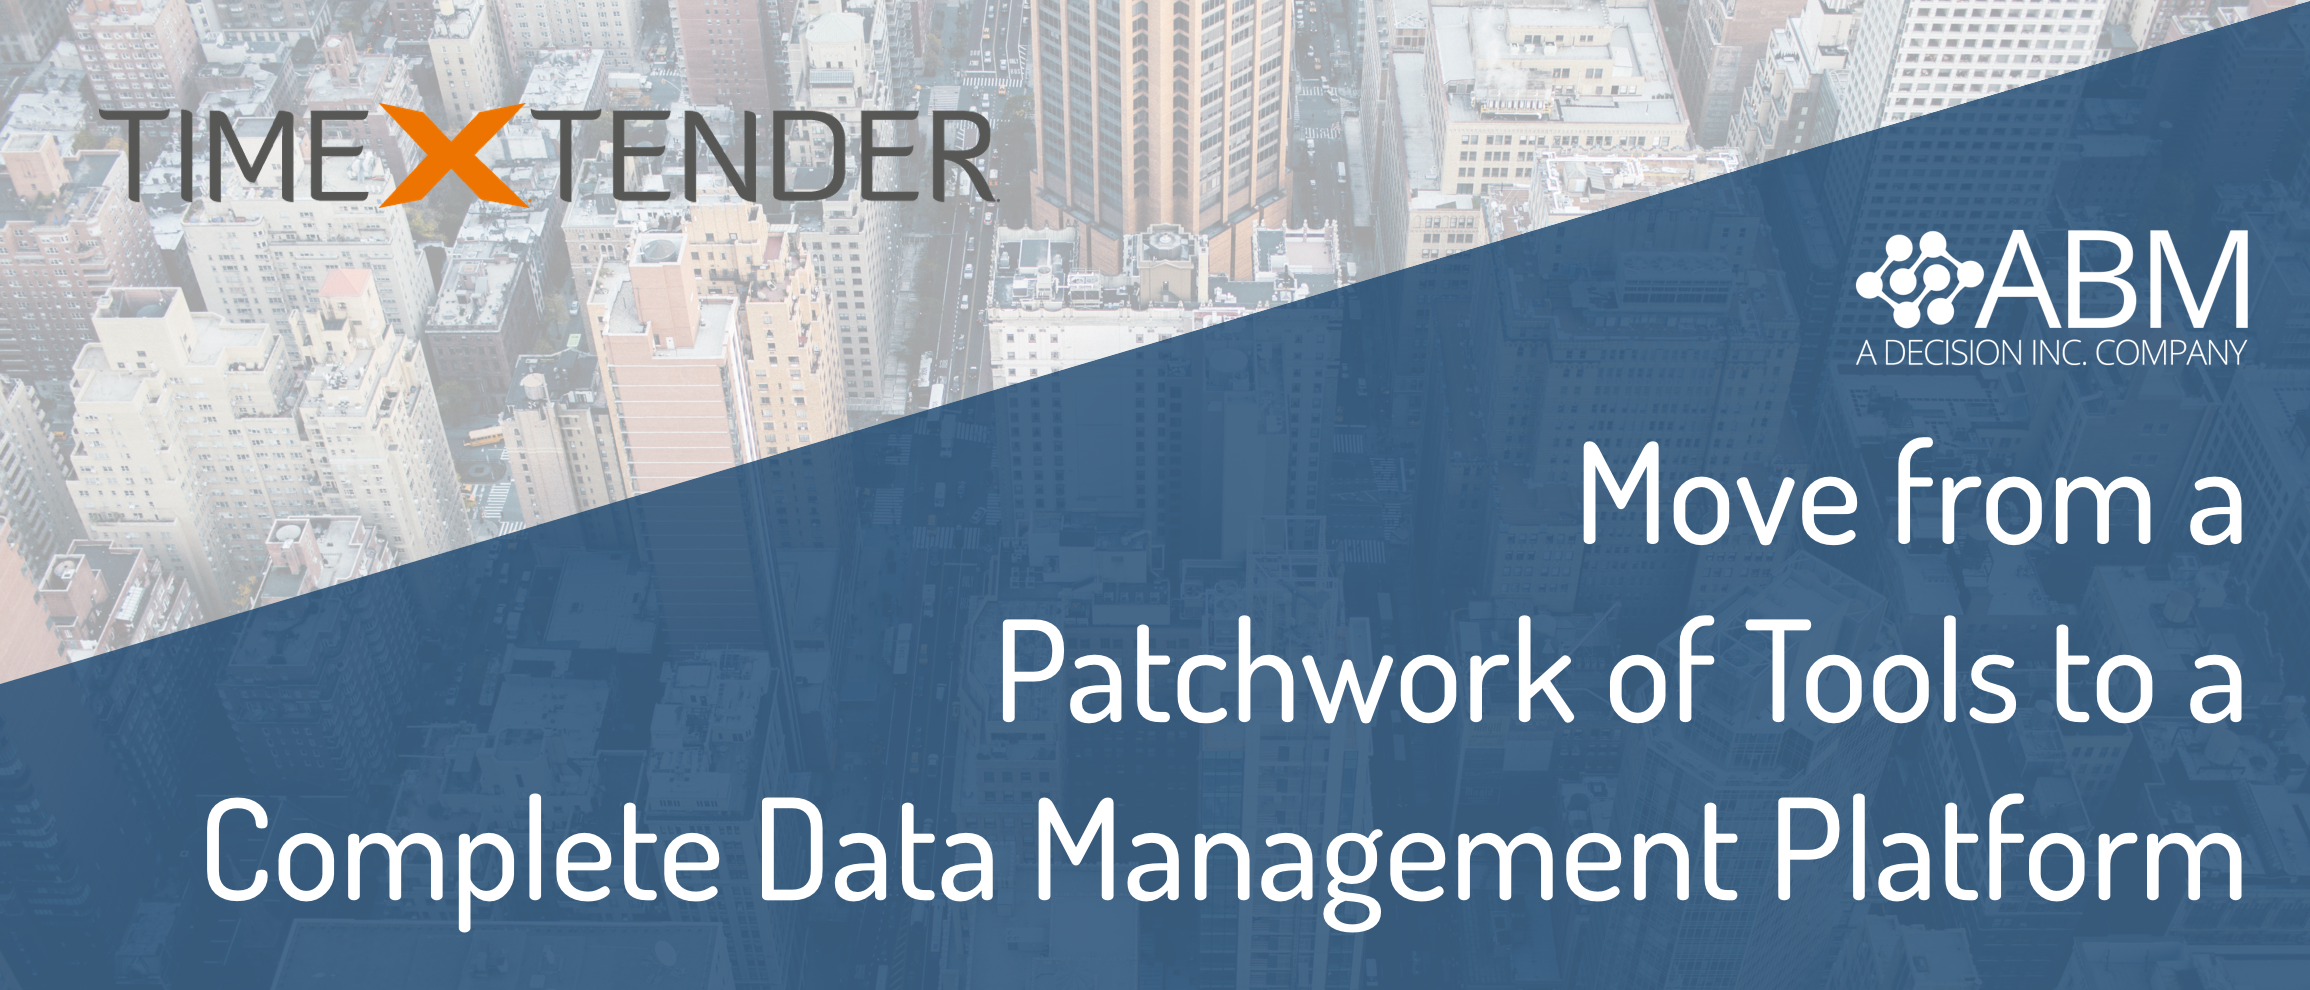 Move from a Patchwork of Tools to a Complete Data Management Platform